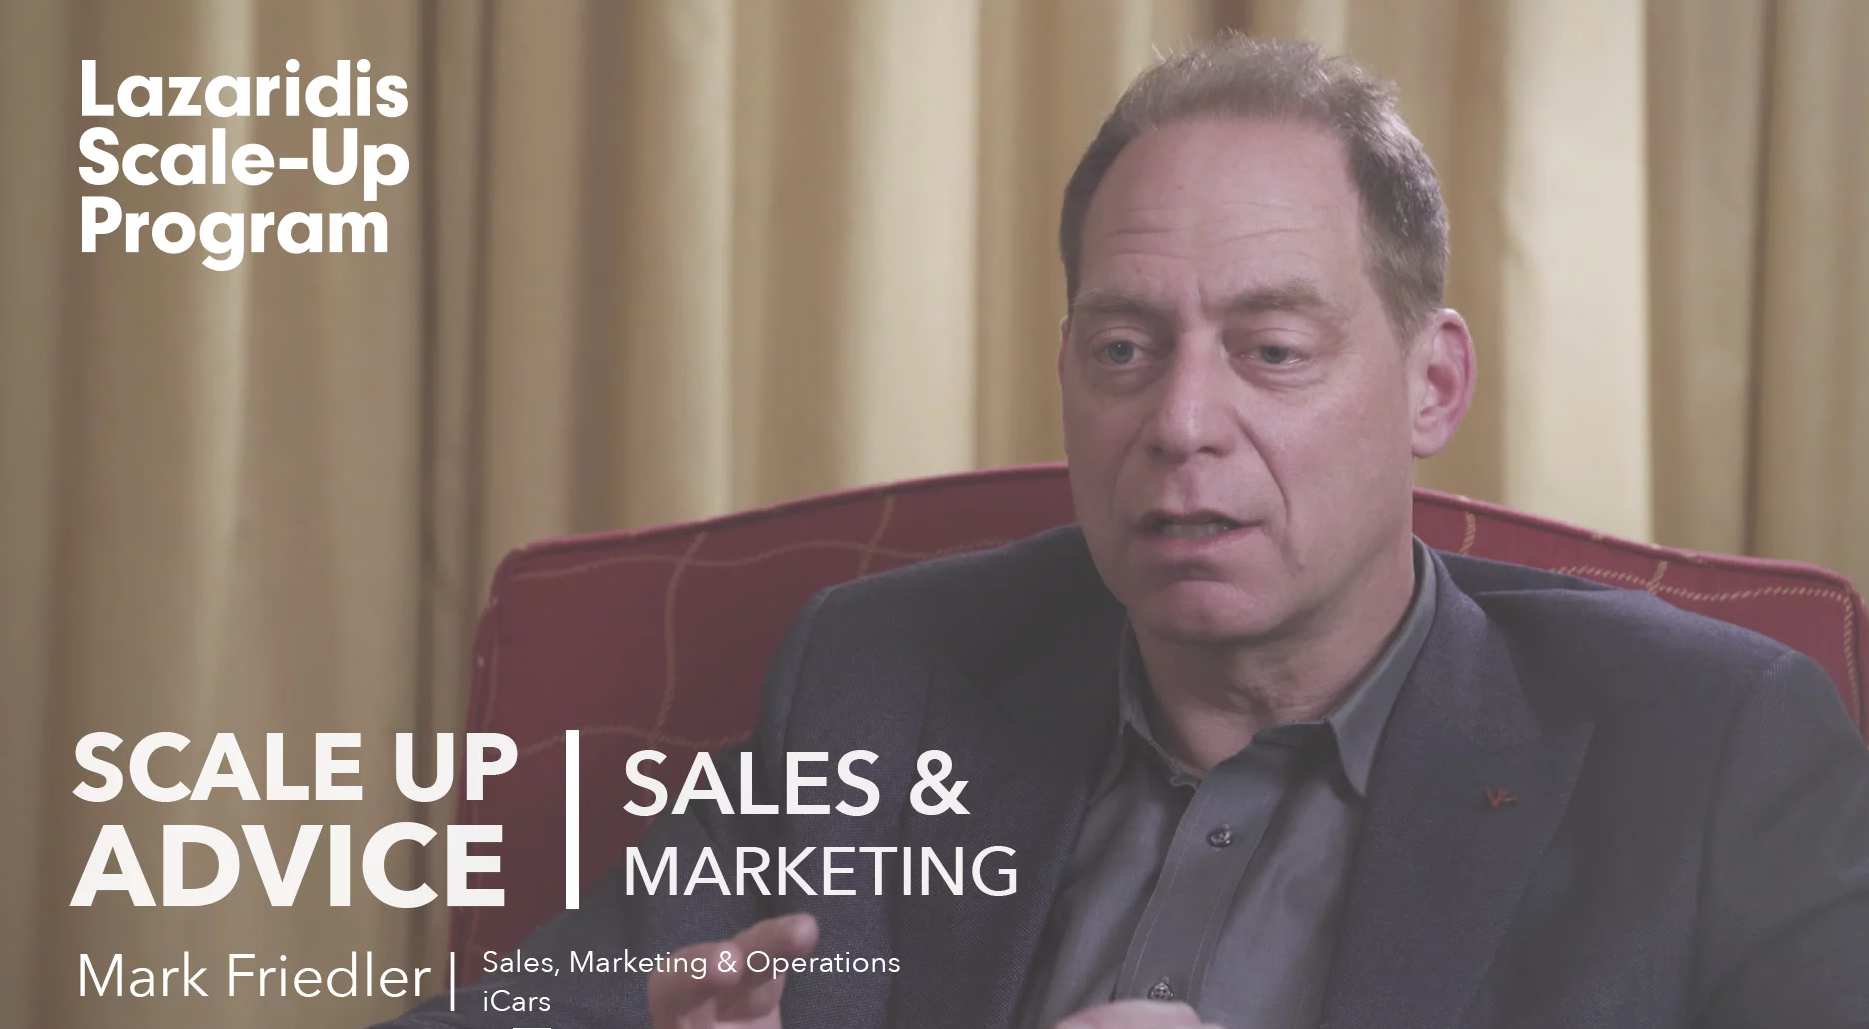 Video: Mark Friedler - Top 3 Sales and Marketing Tips